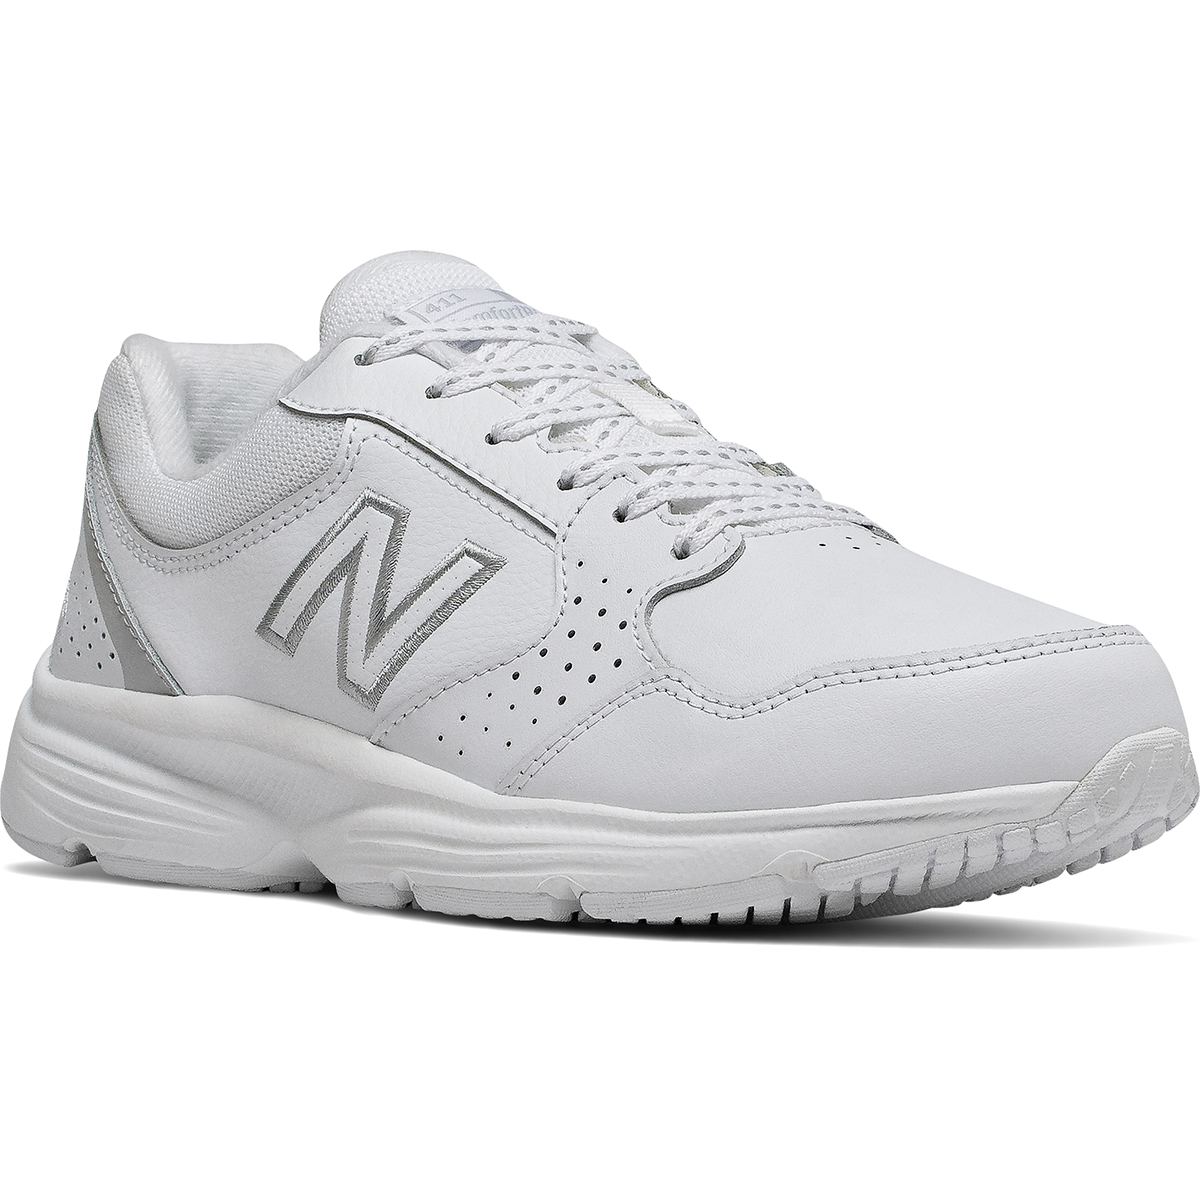 New Balance Women's 411 Walking Shoes, Wide - White, 8.5